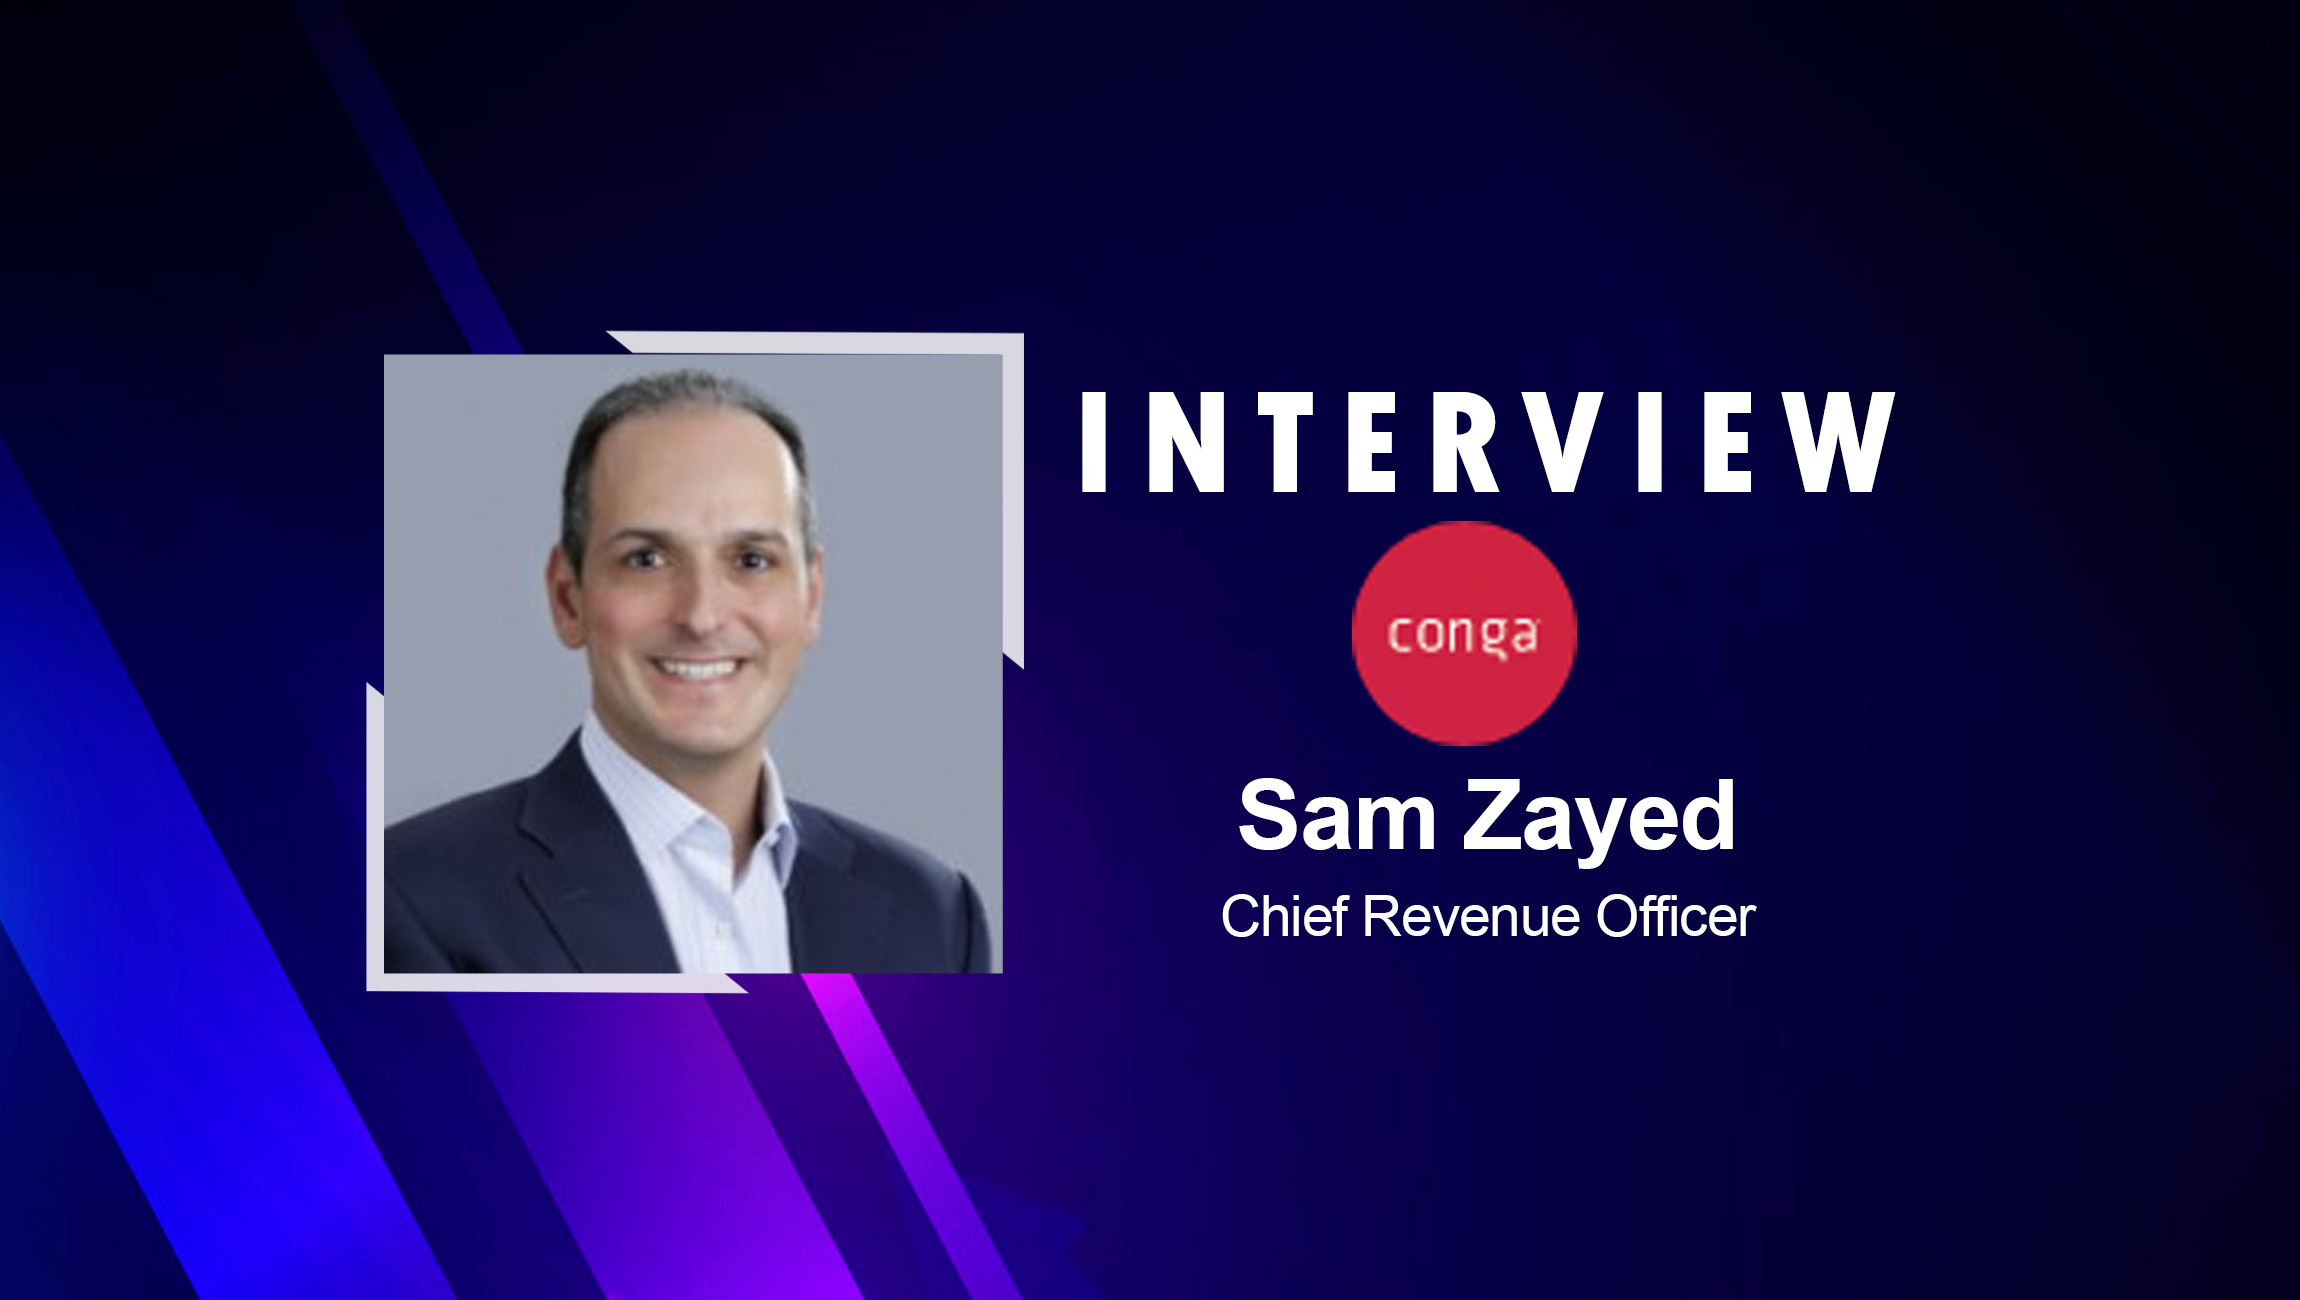 SalesTechStar Interview with Sam Zayed, Chief Revenue Officer at Conga